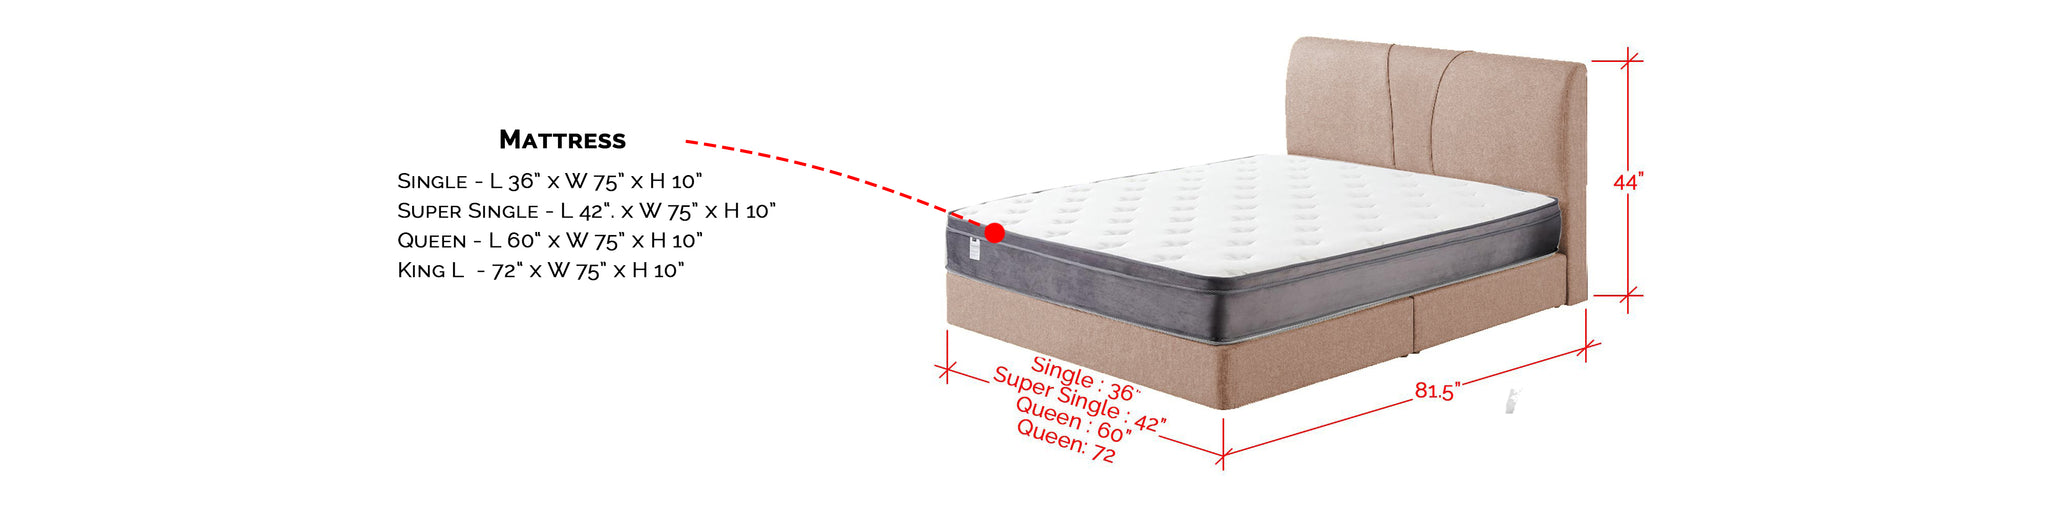 """Fanny Fabric Platform Divan + 10"""" Diomire UNO Mattress In Single, Super Single, Queen, And King Size"""